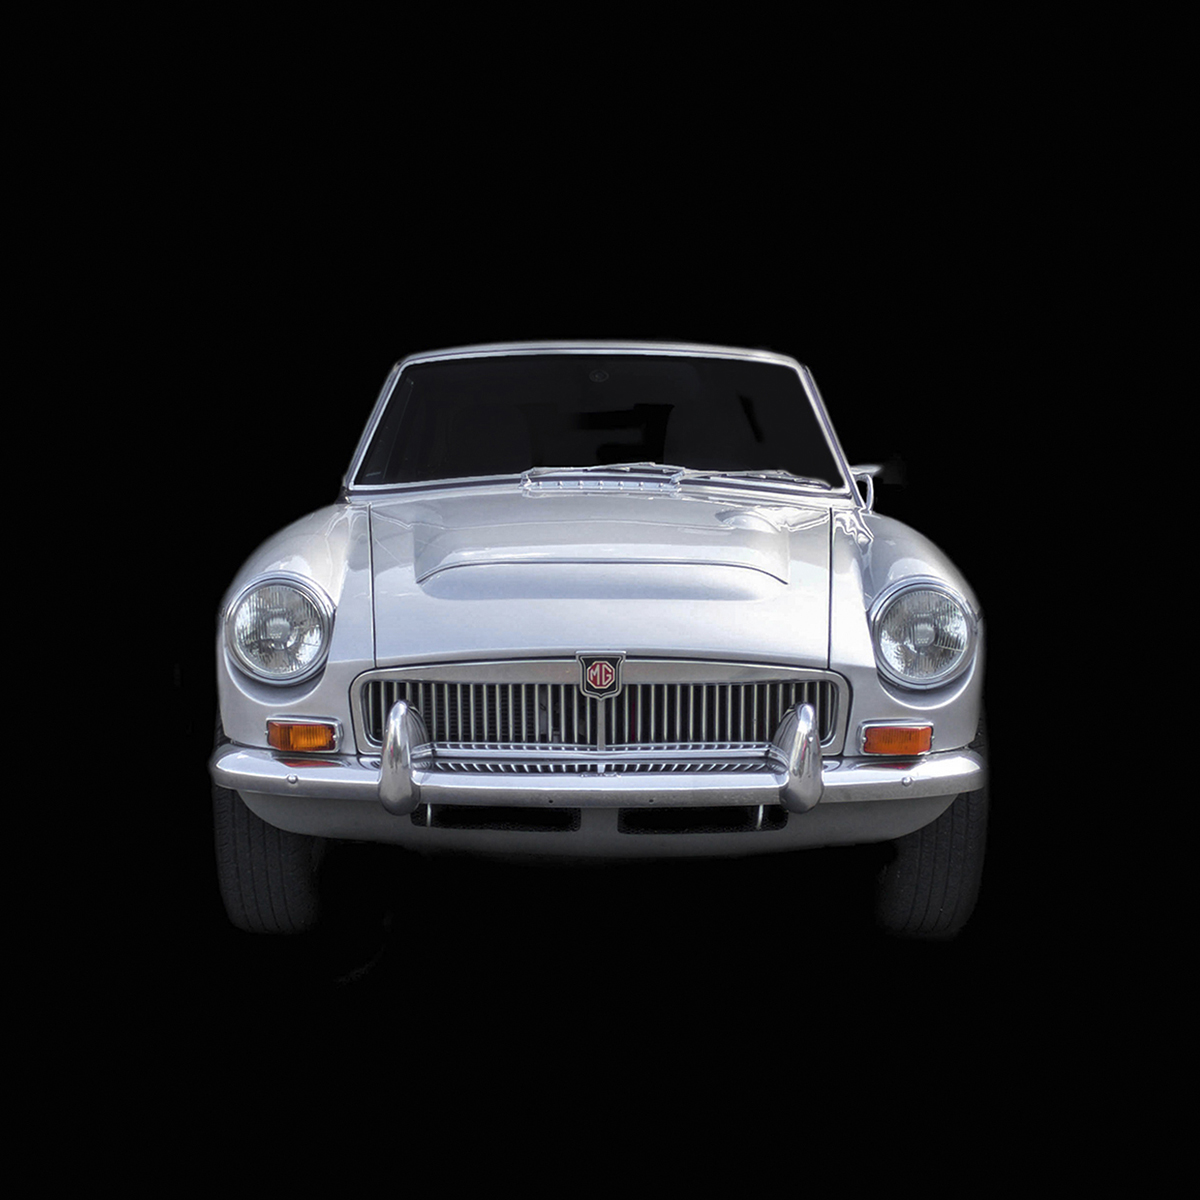 Voiture-ancienne-MGC-GT-1969-front